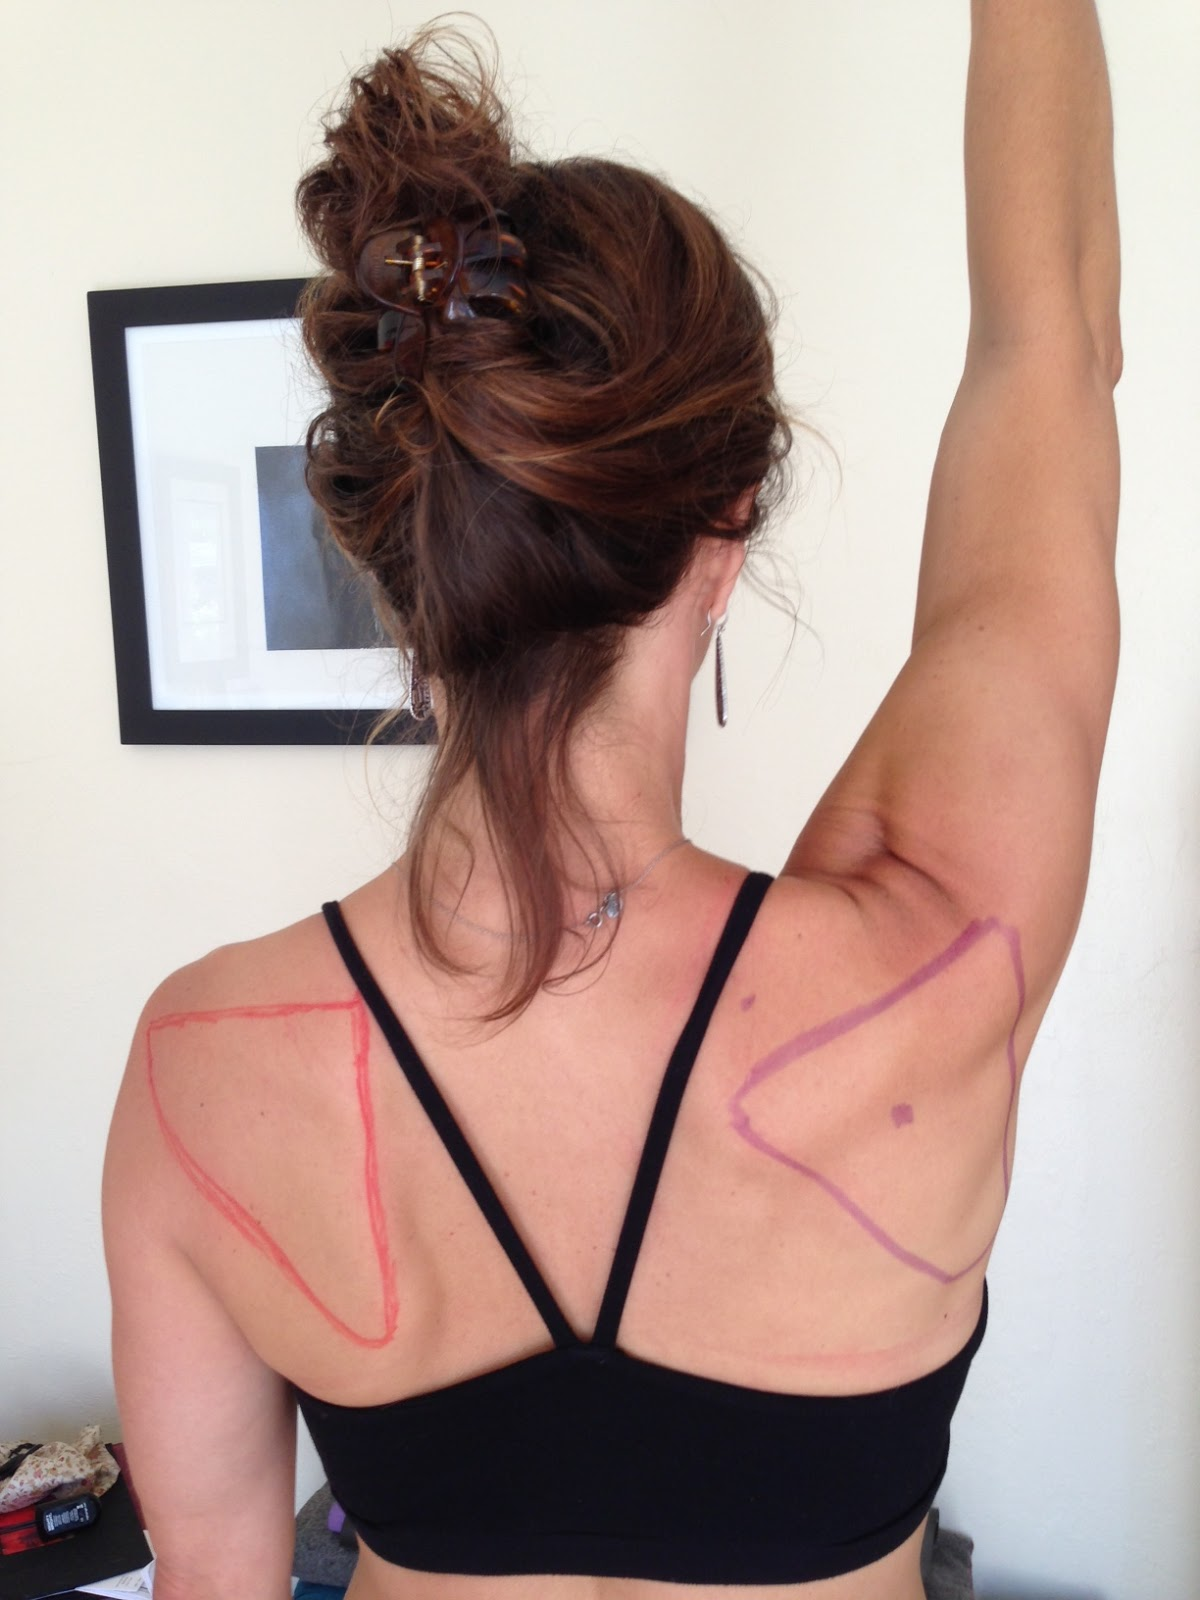 Which Way Should Your Shoulder Blades Go? | YOGA FOR HEALTHY AGING